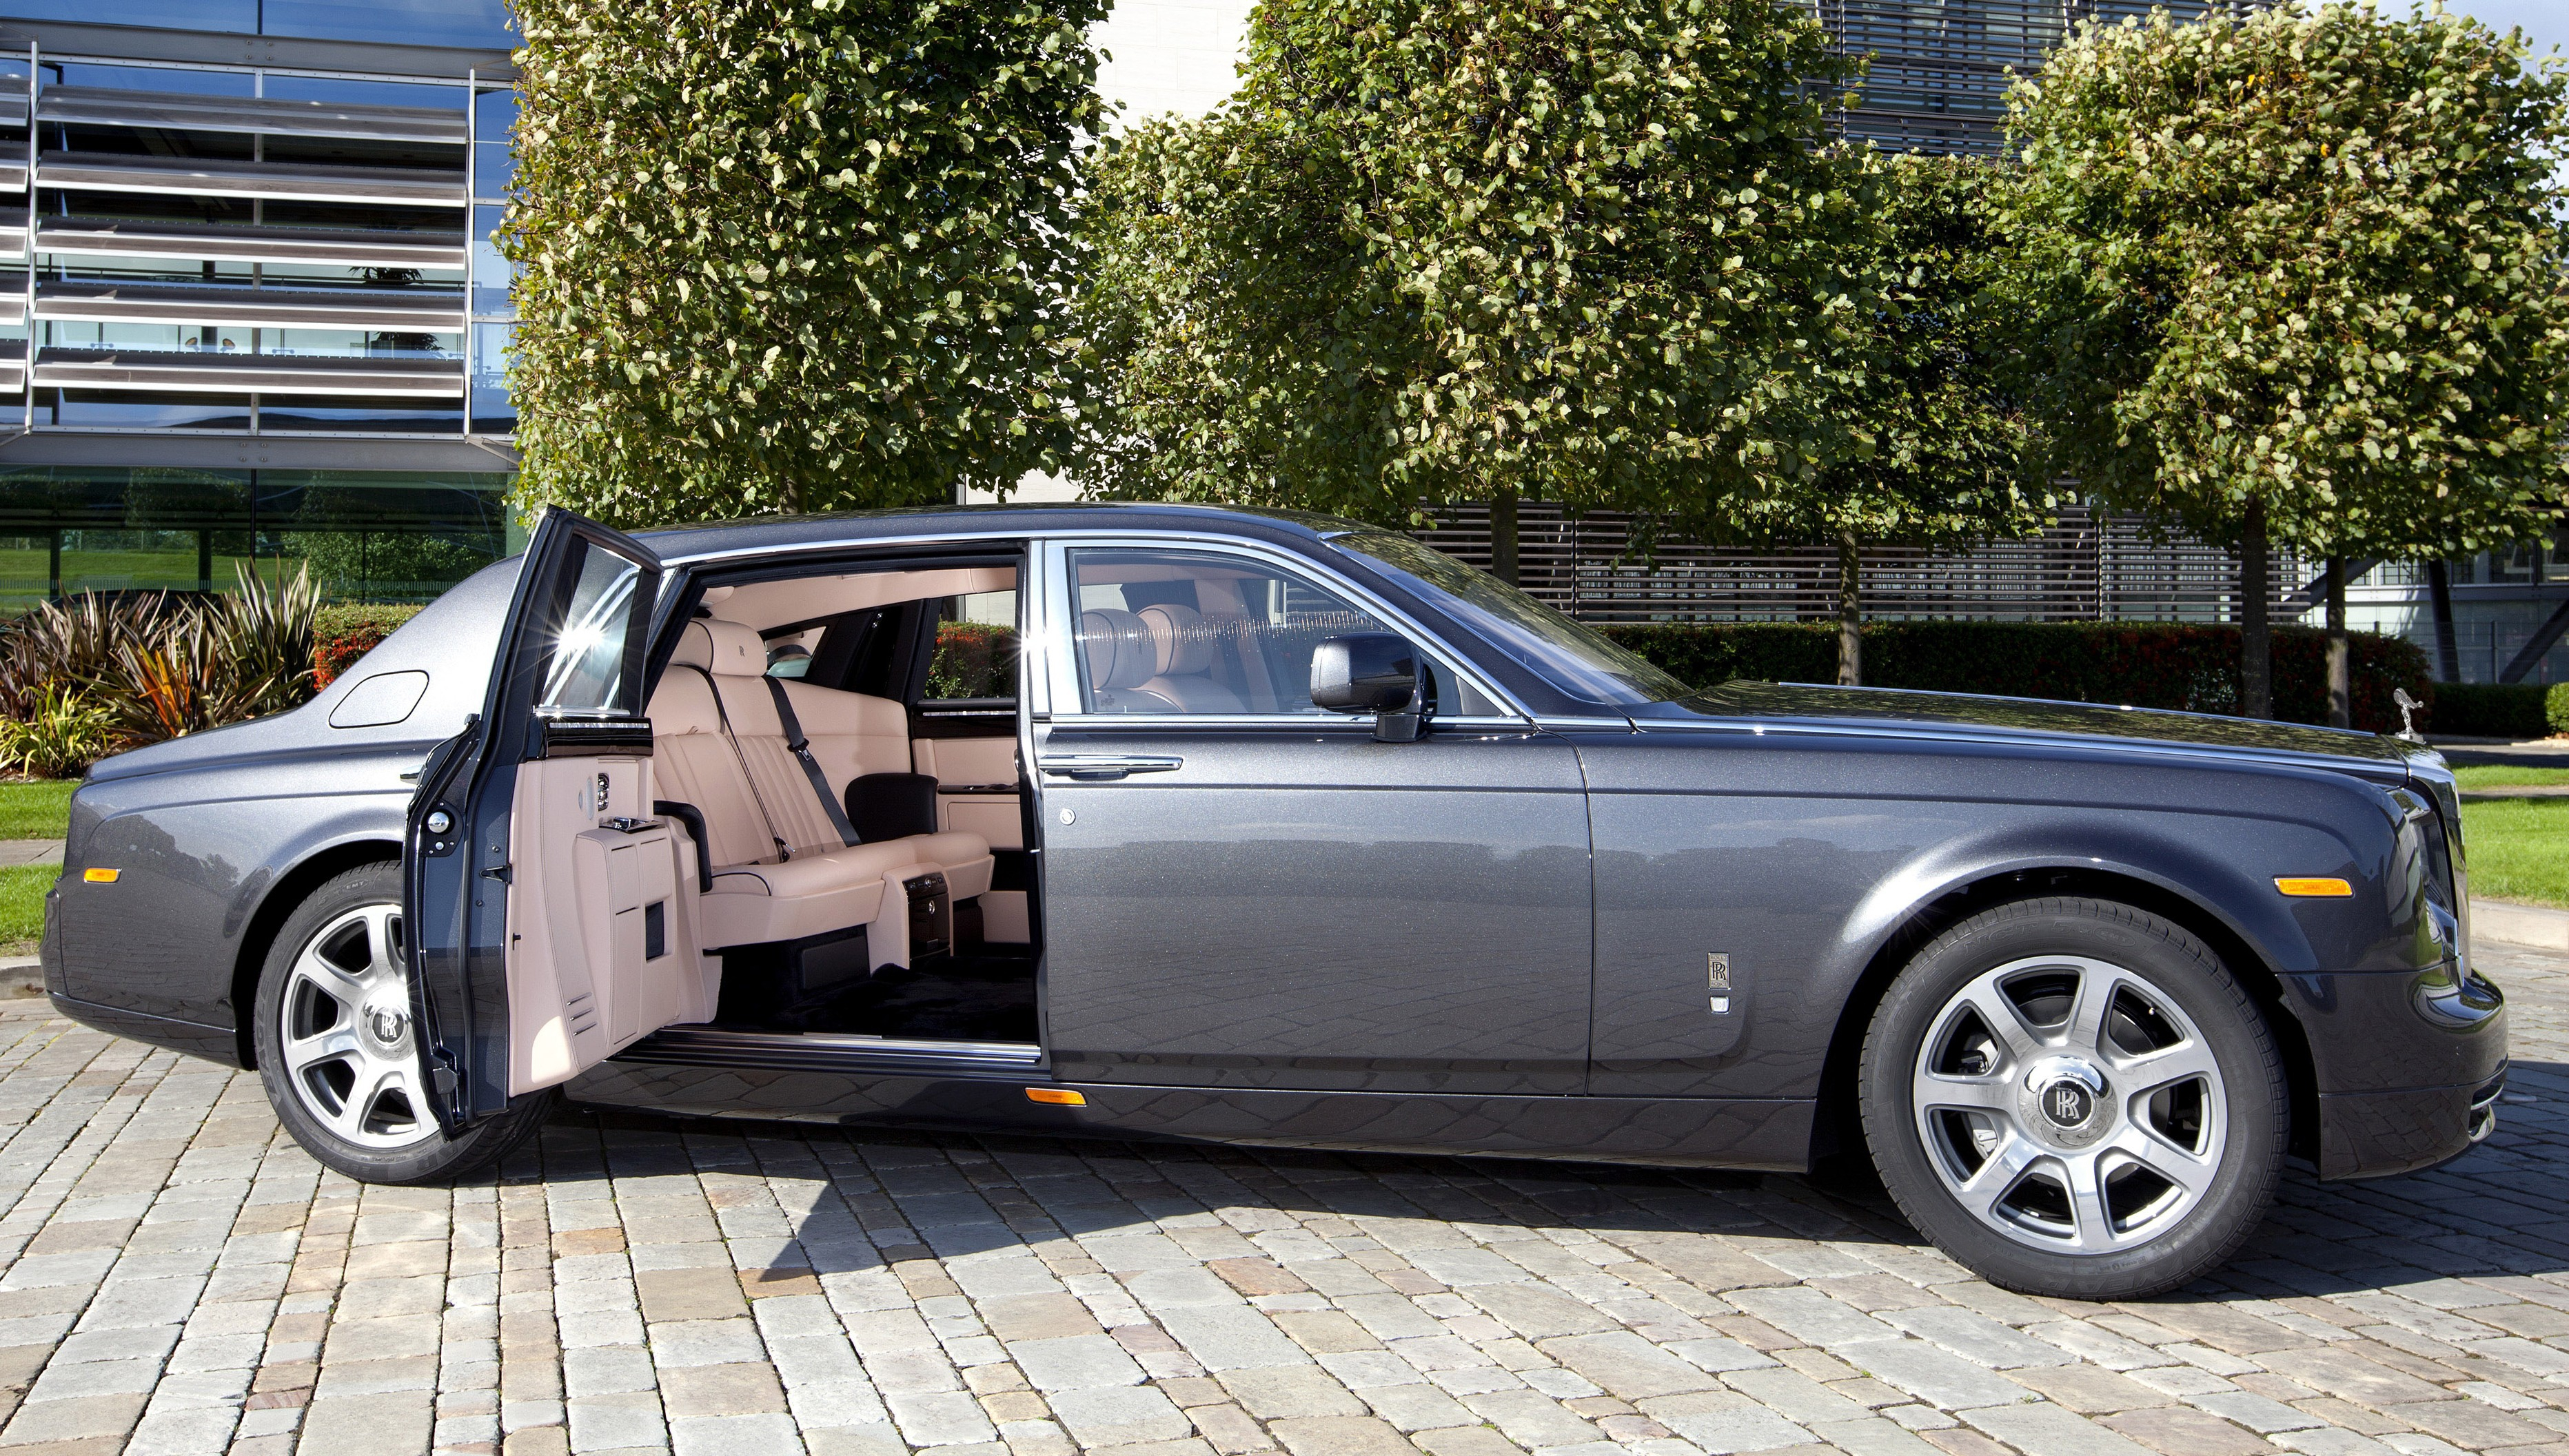 rollsroyce ghost wallpapers images photos pictures